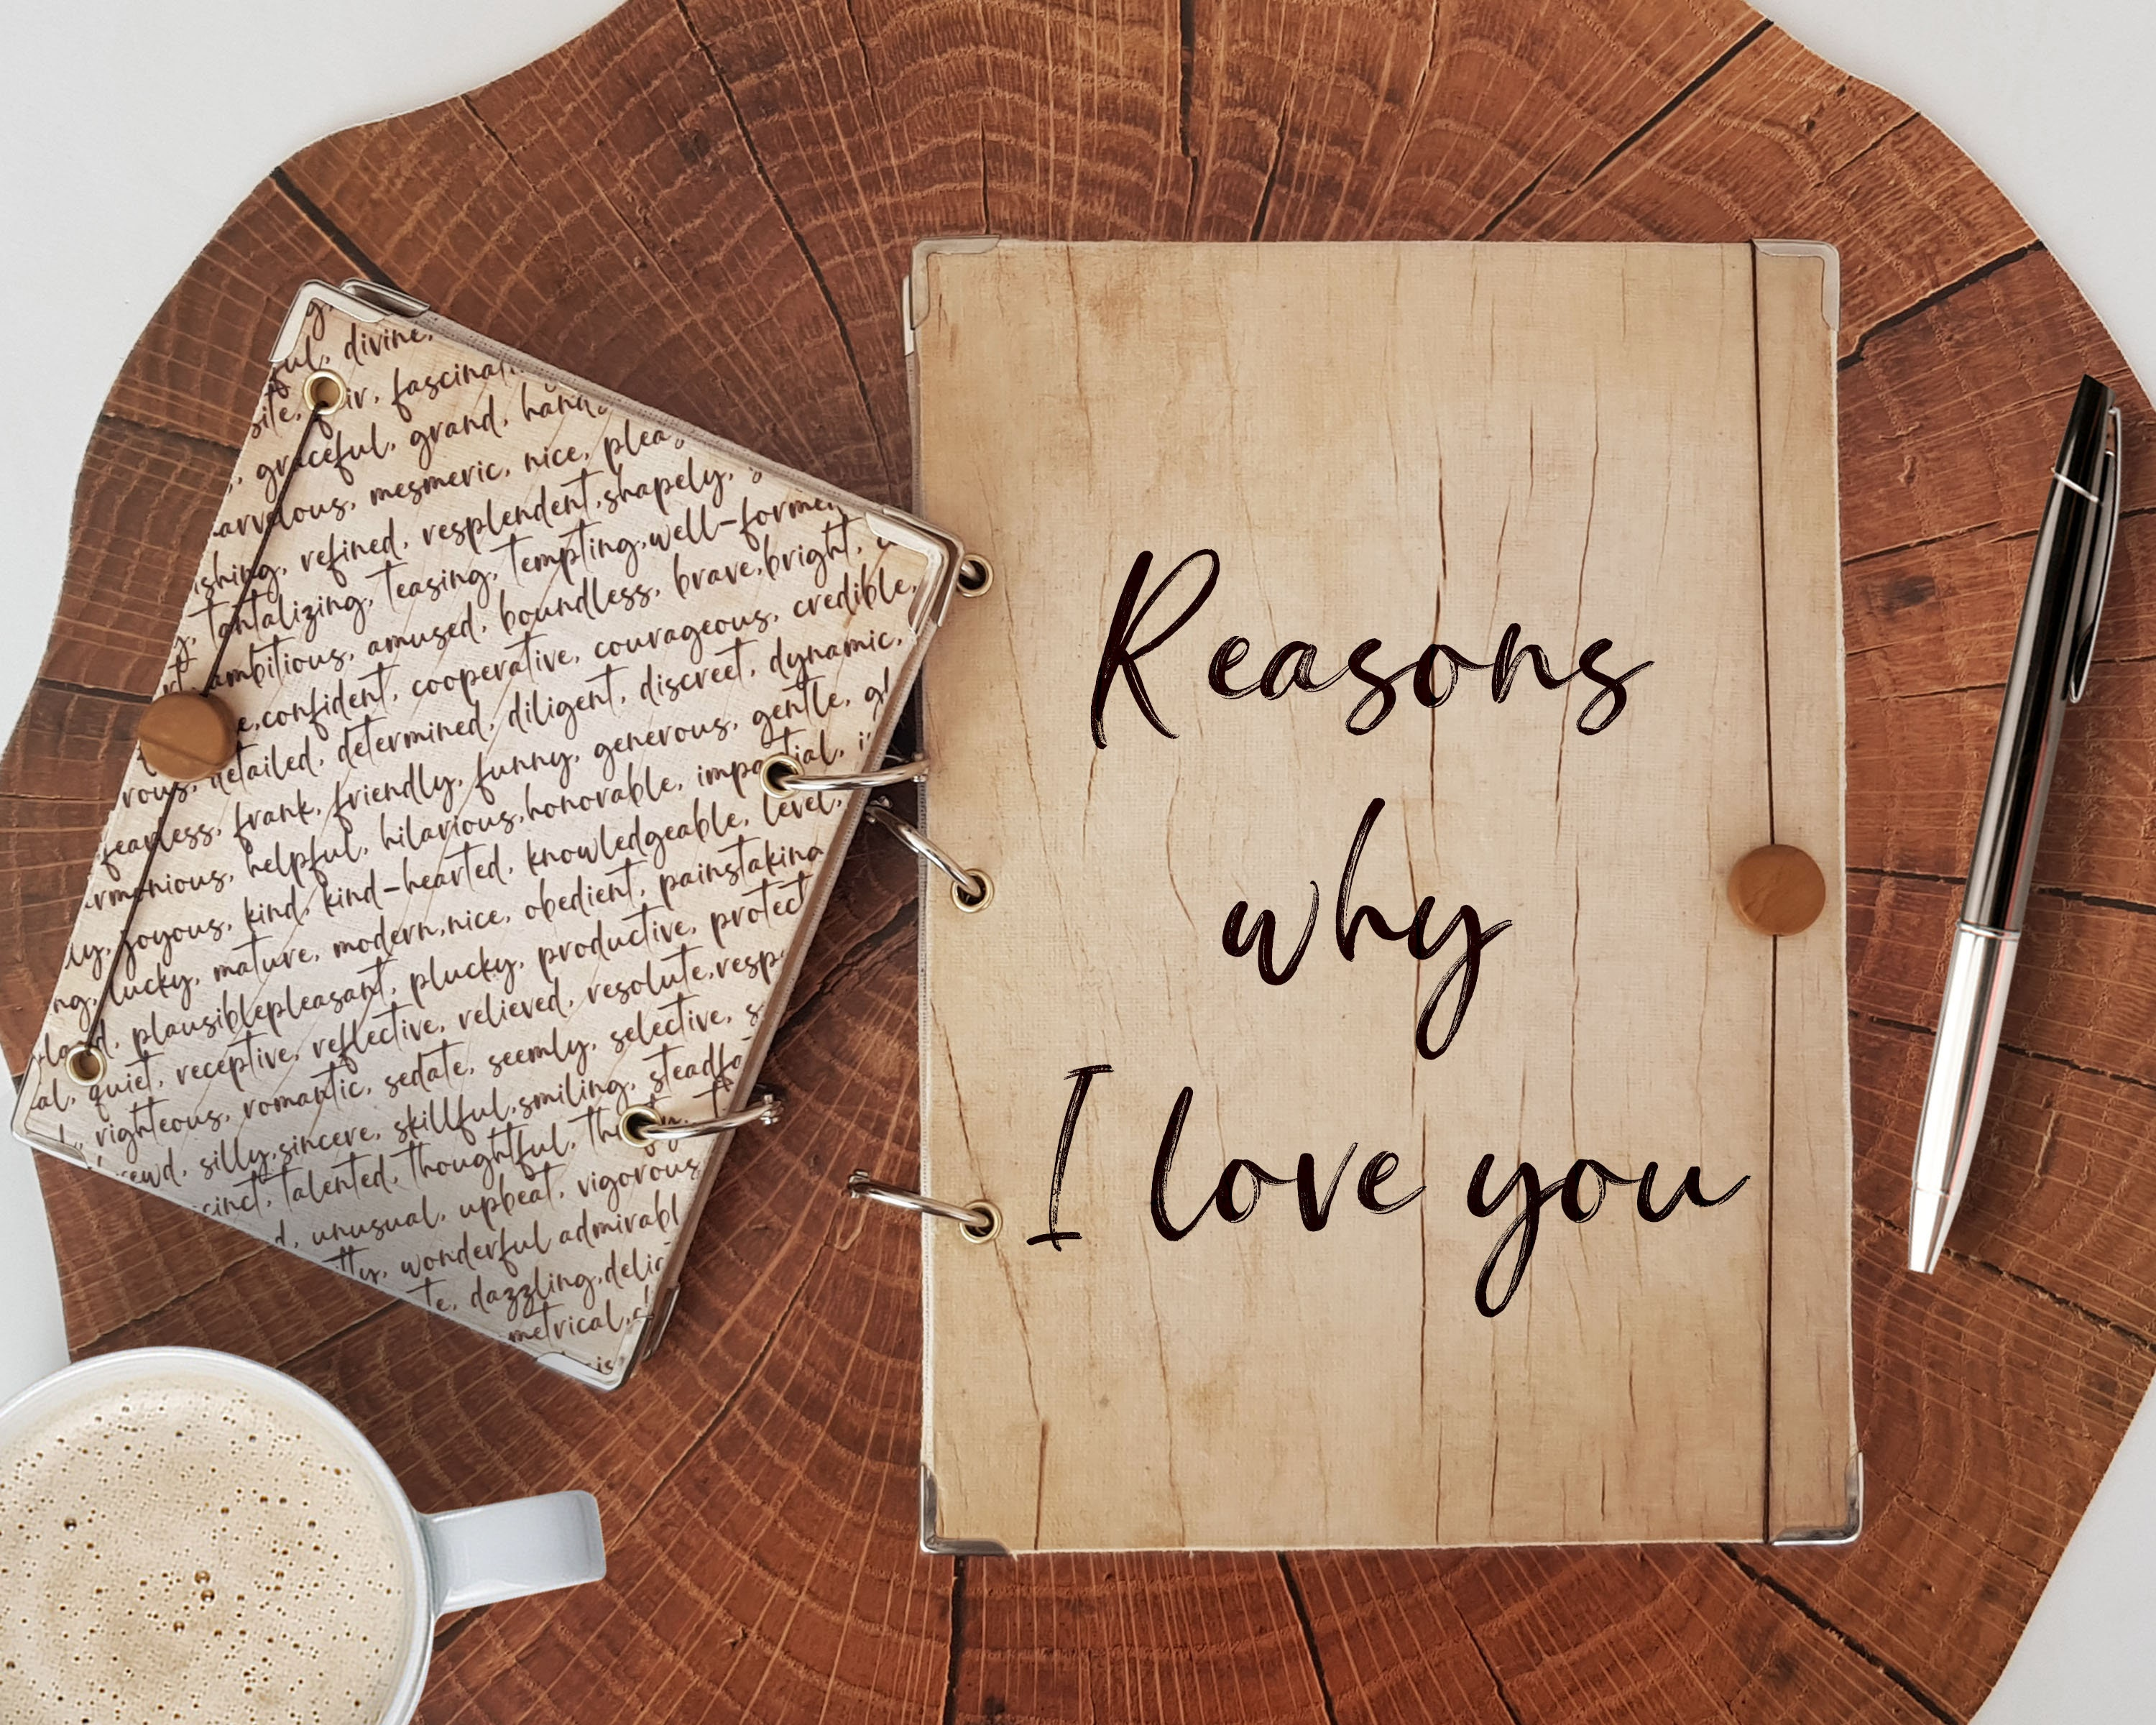 Reasons why I love you notebook, Cute Wood Look Journal in